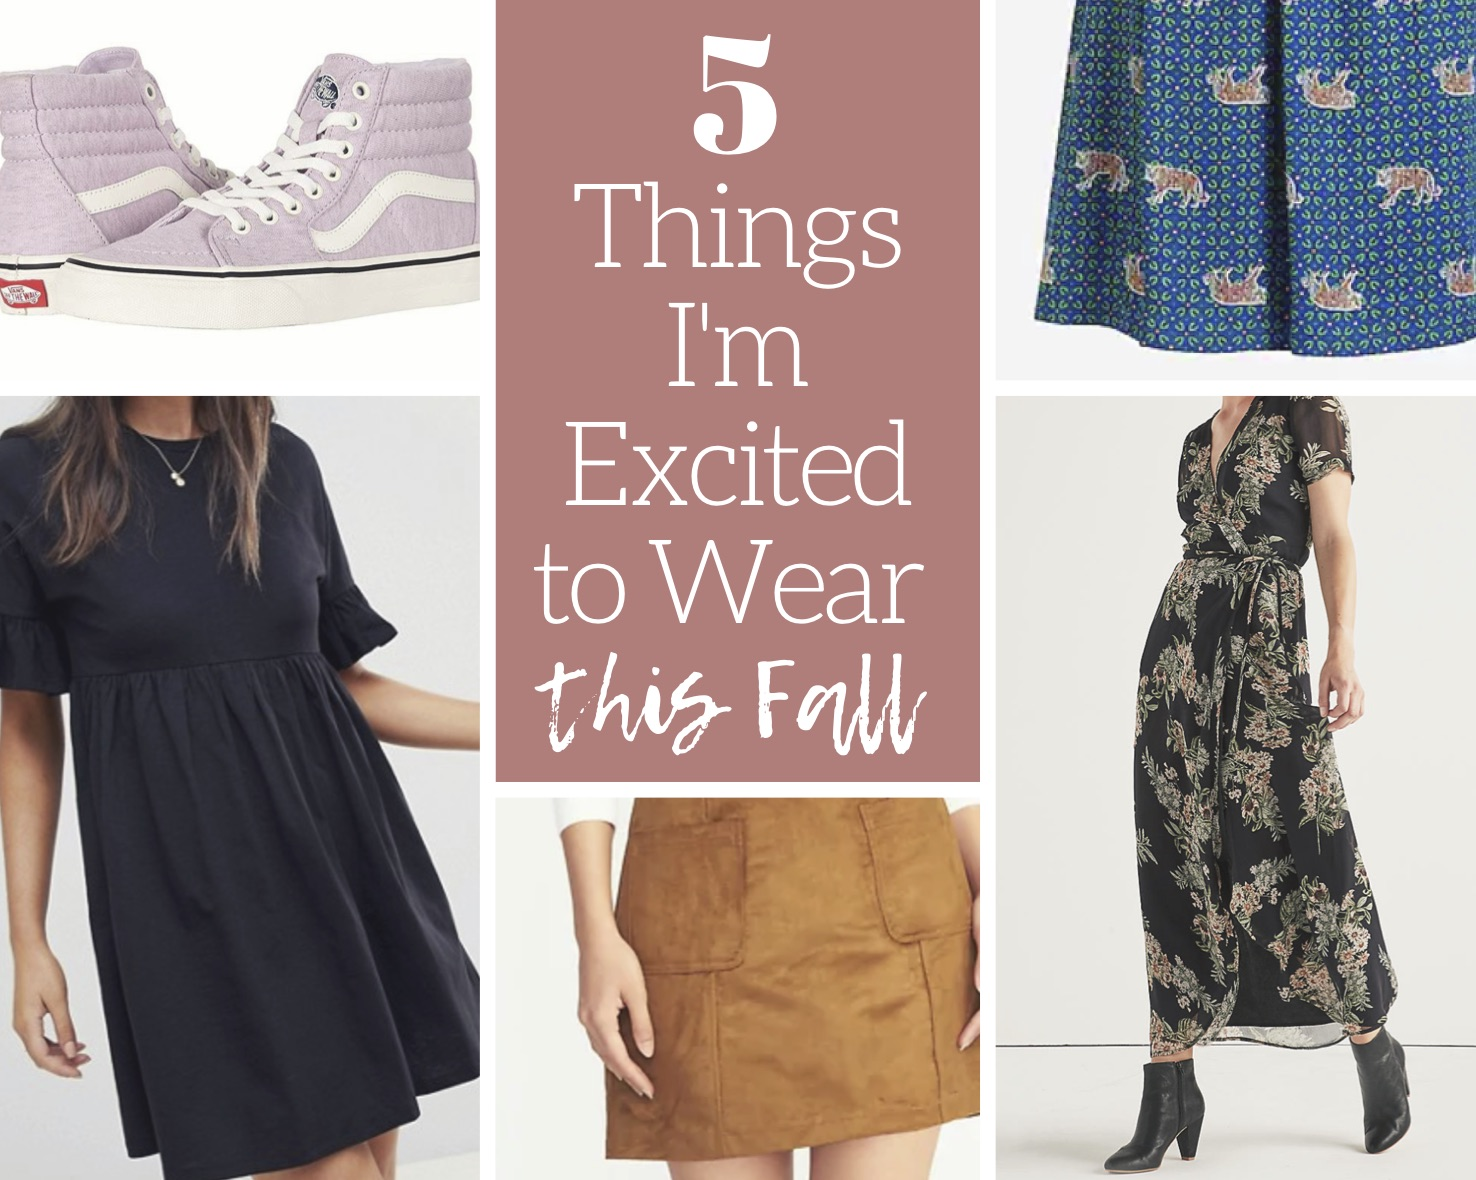 5 Cool Looks to Wear This Fall 5 Cool Looks to Wear This Fall new images